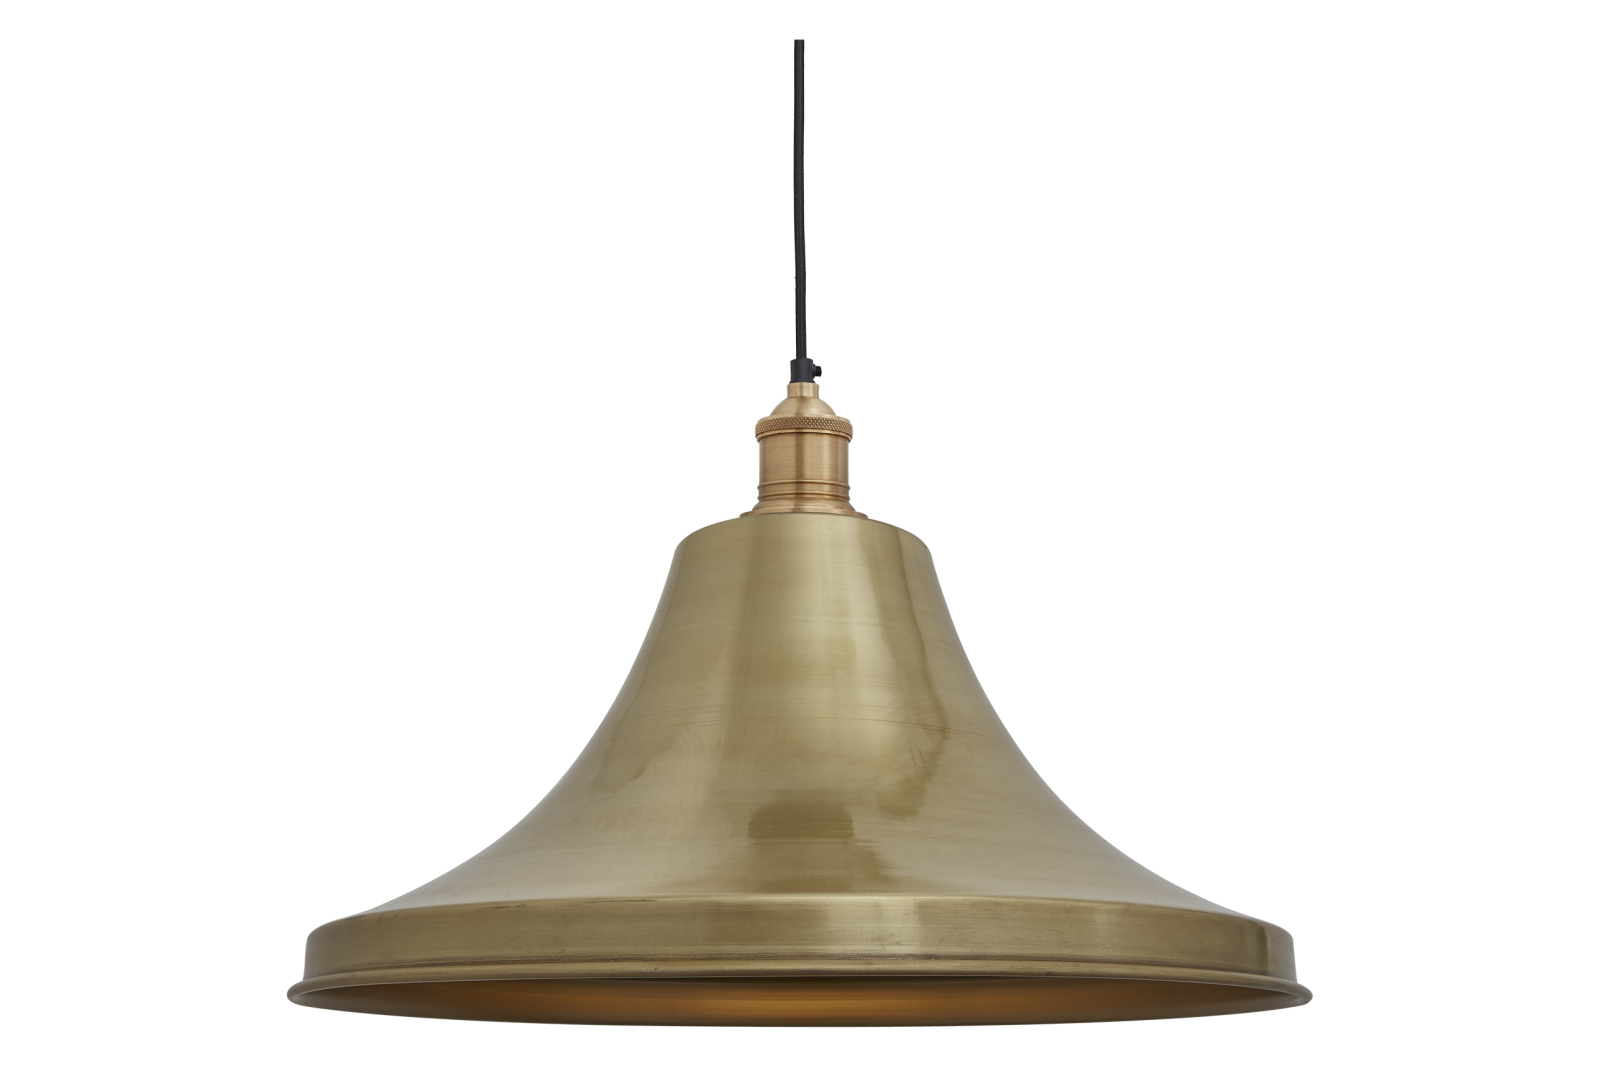 Brooklyn Giant Bell Pendant - 20 Inch Brooklyn Giant Bell Pendant - 20 Inch - Brass - Brass Holder